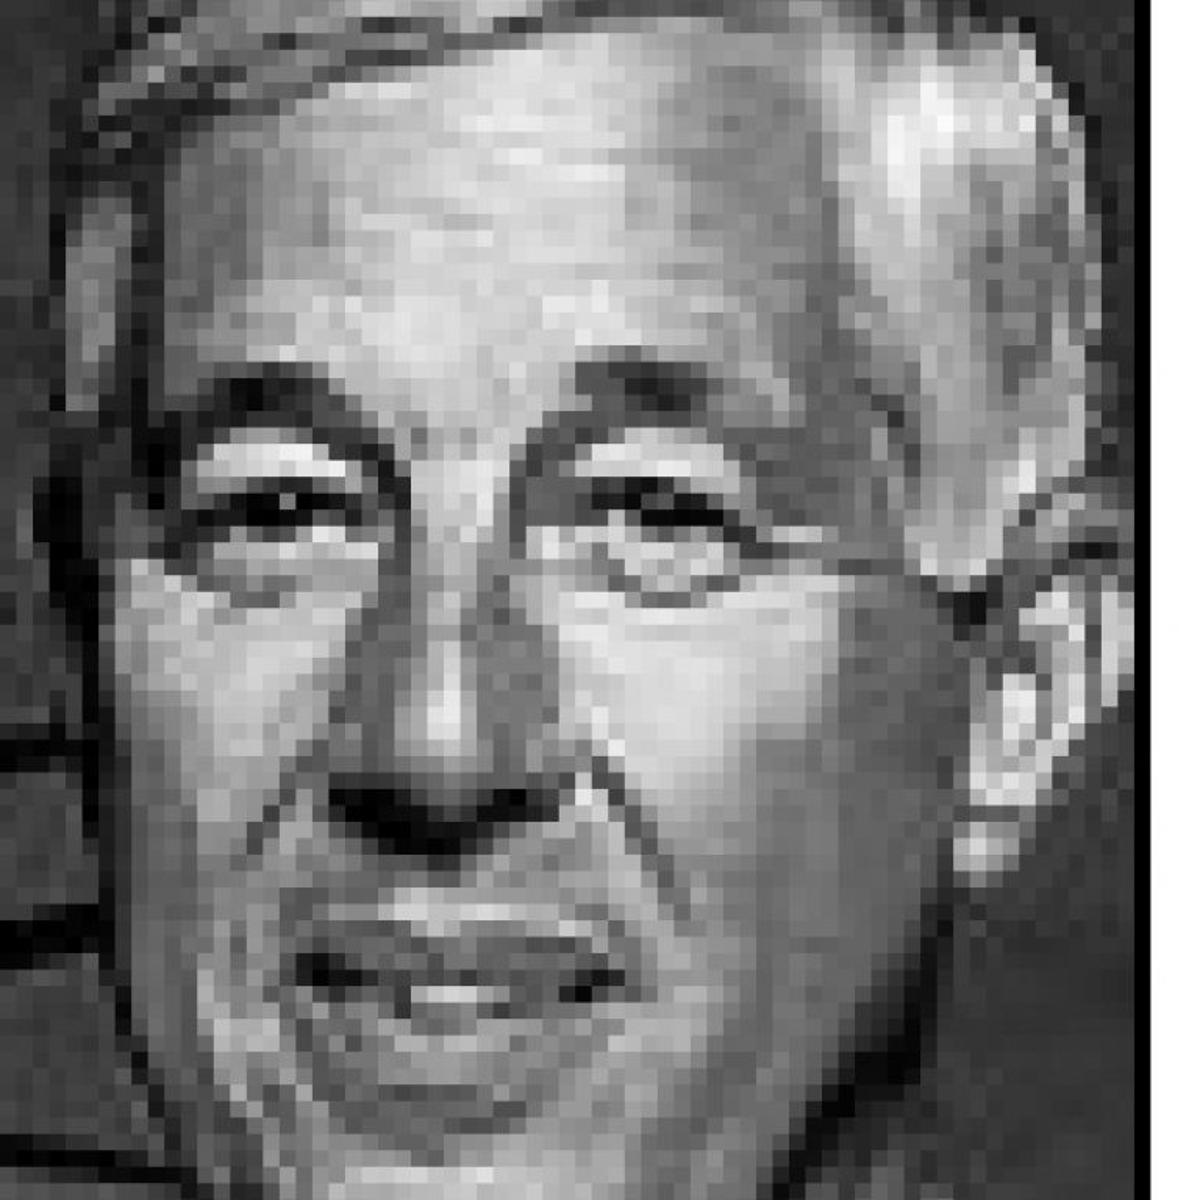 Patrick Auto Group S Retired Founder Dies At 74 Richmond Com